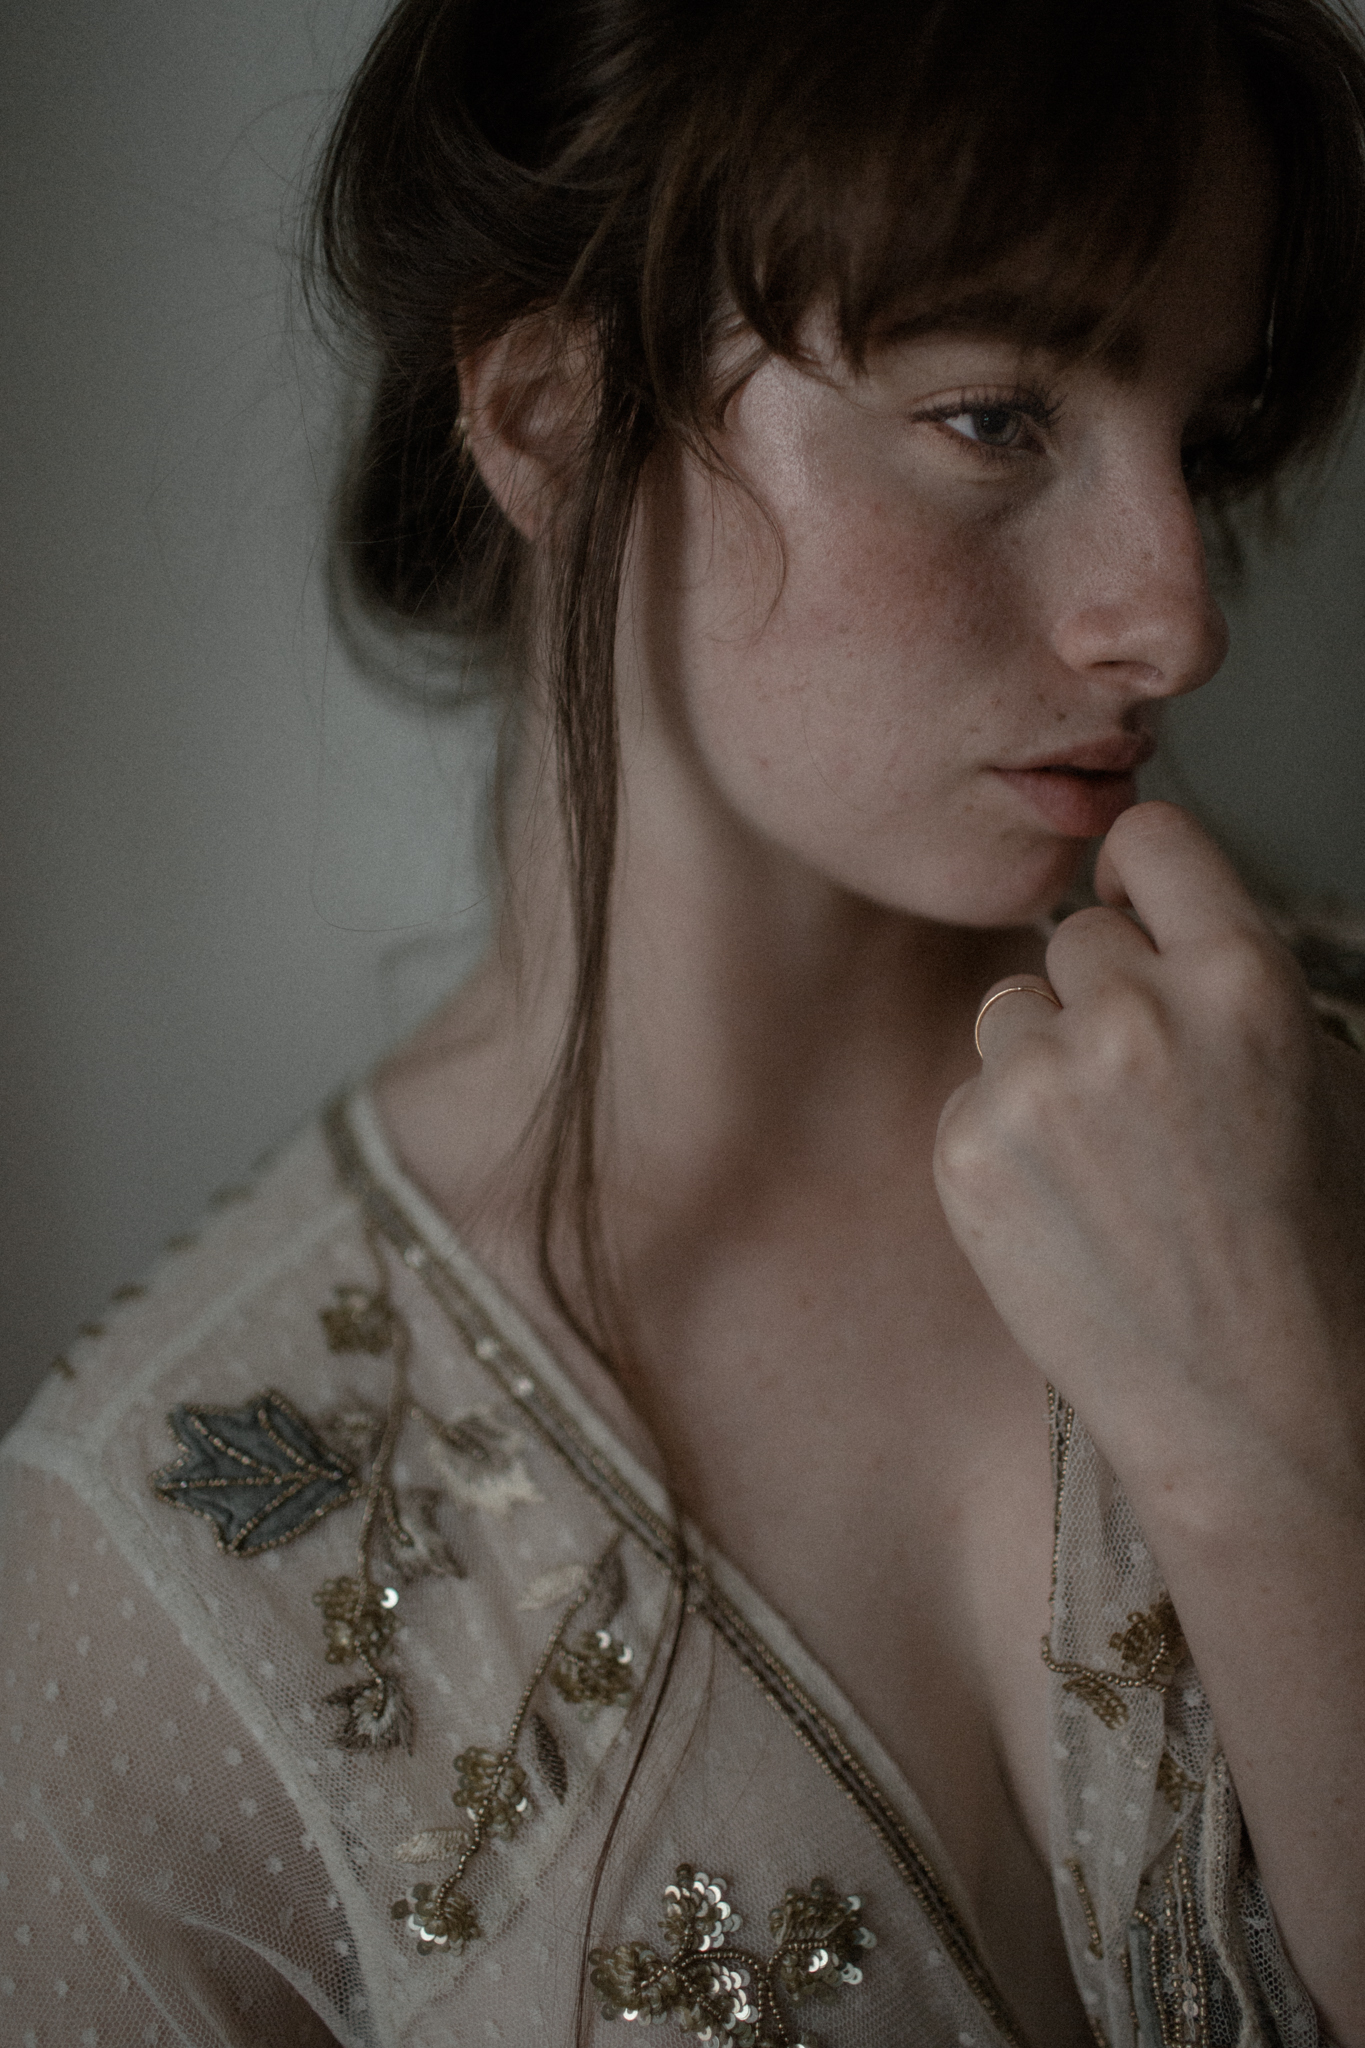 Dreamy free people urban outfitters inspired portrait editorial session Columbus Ohio photographer sarah rose photography